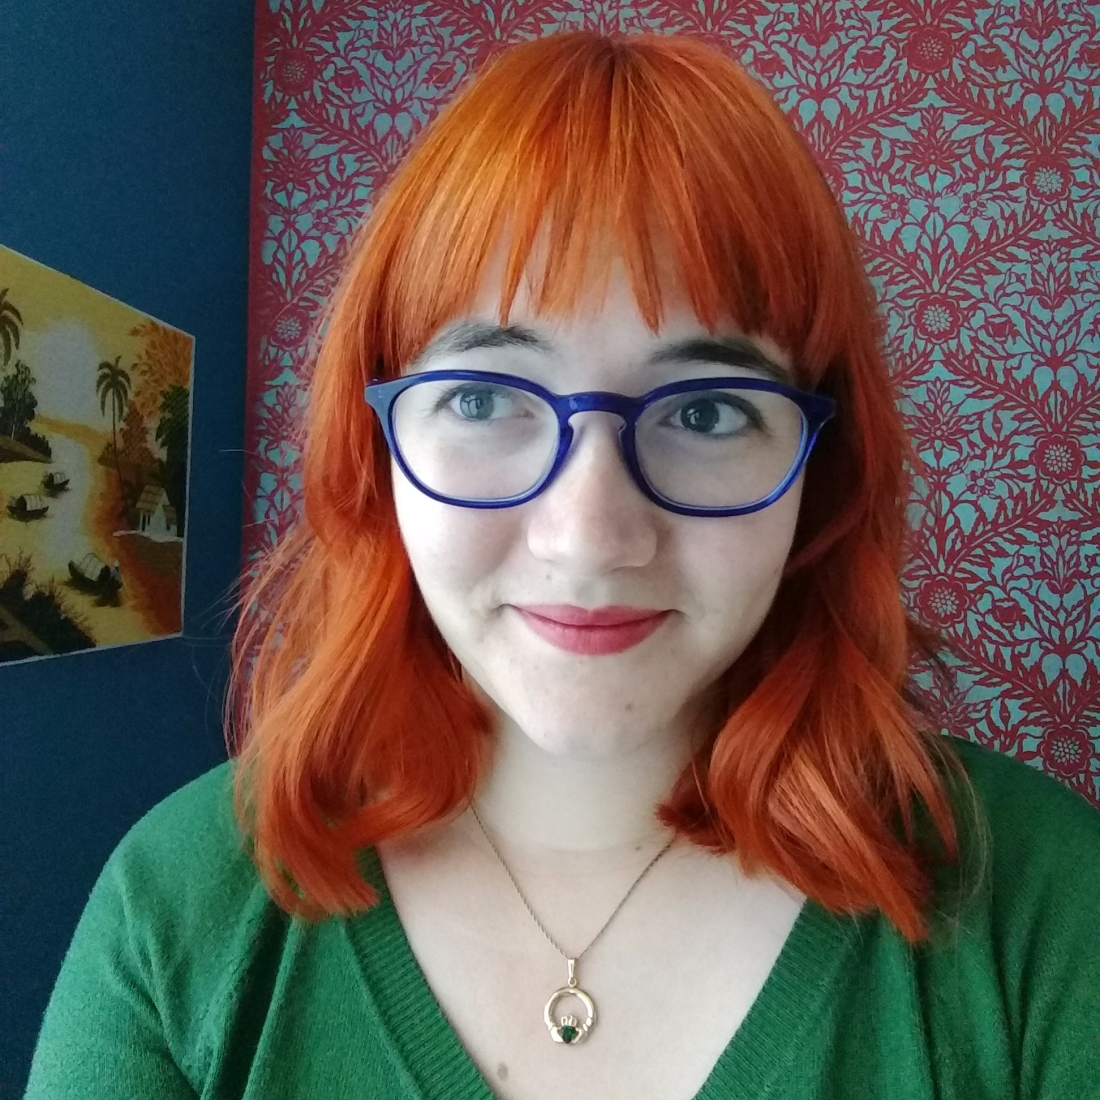 Me with bright copper hair, blue glasses, and a green sweater.